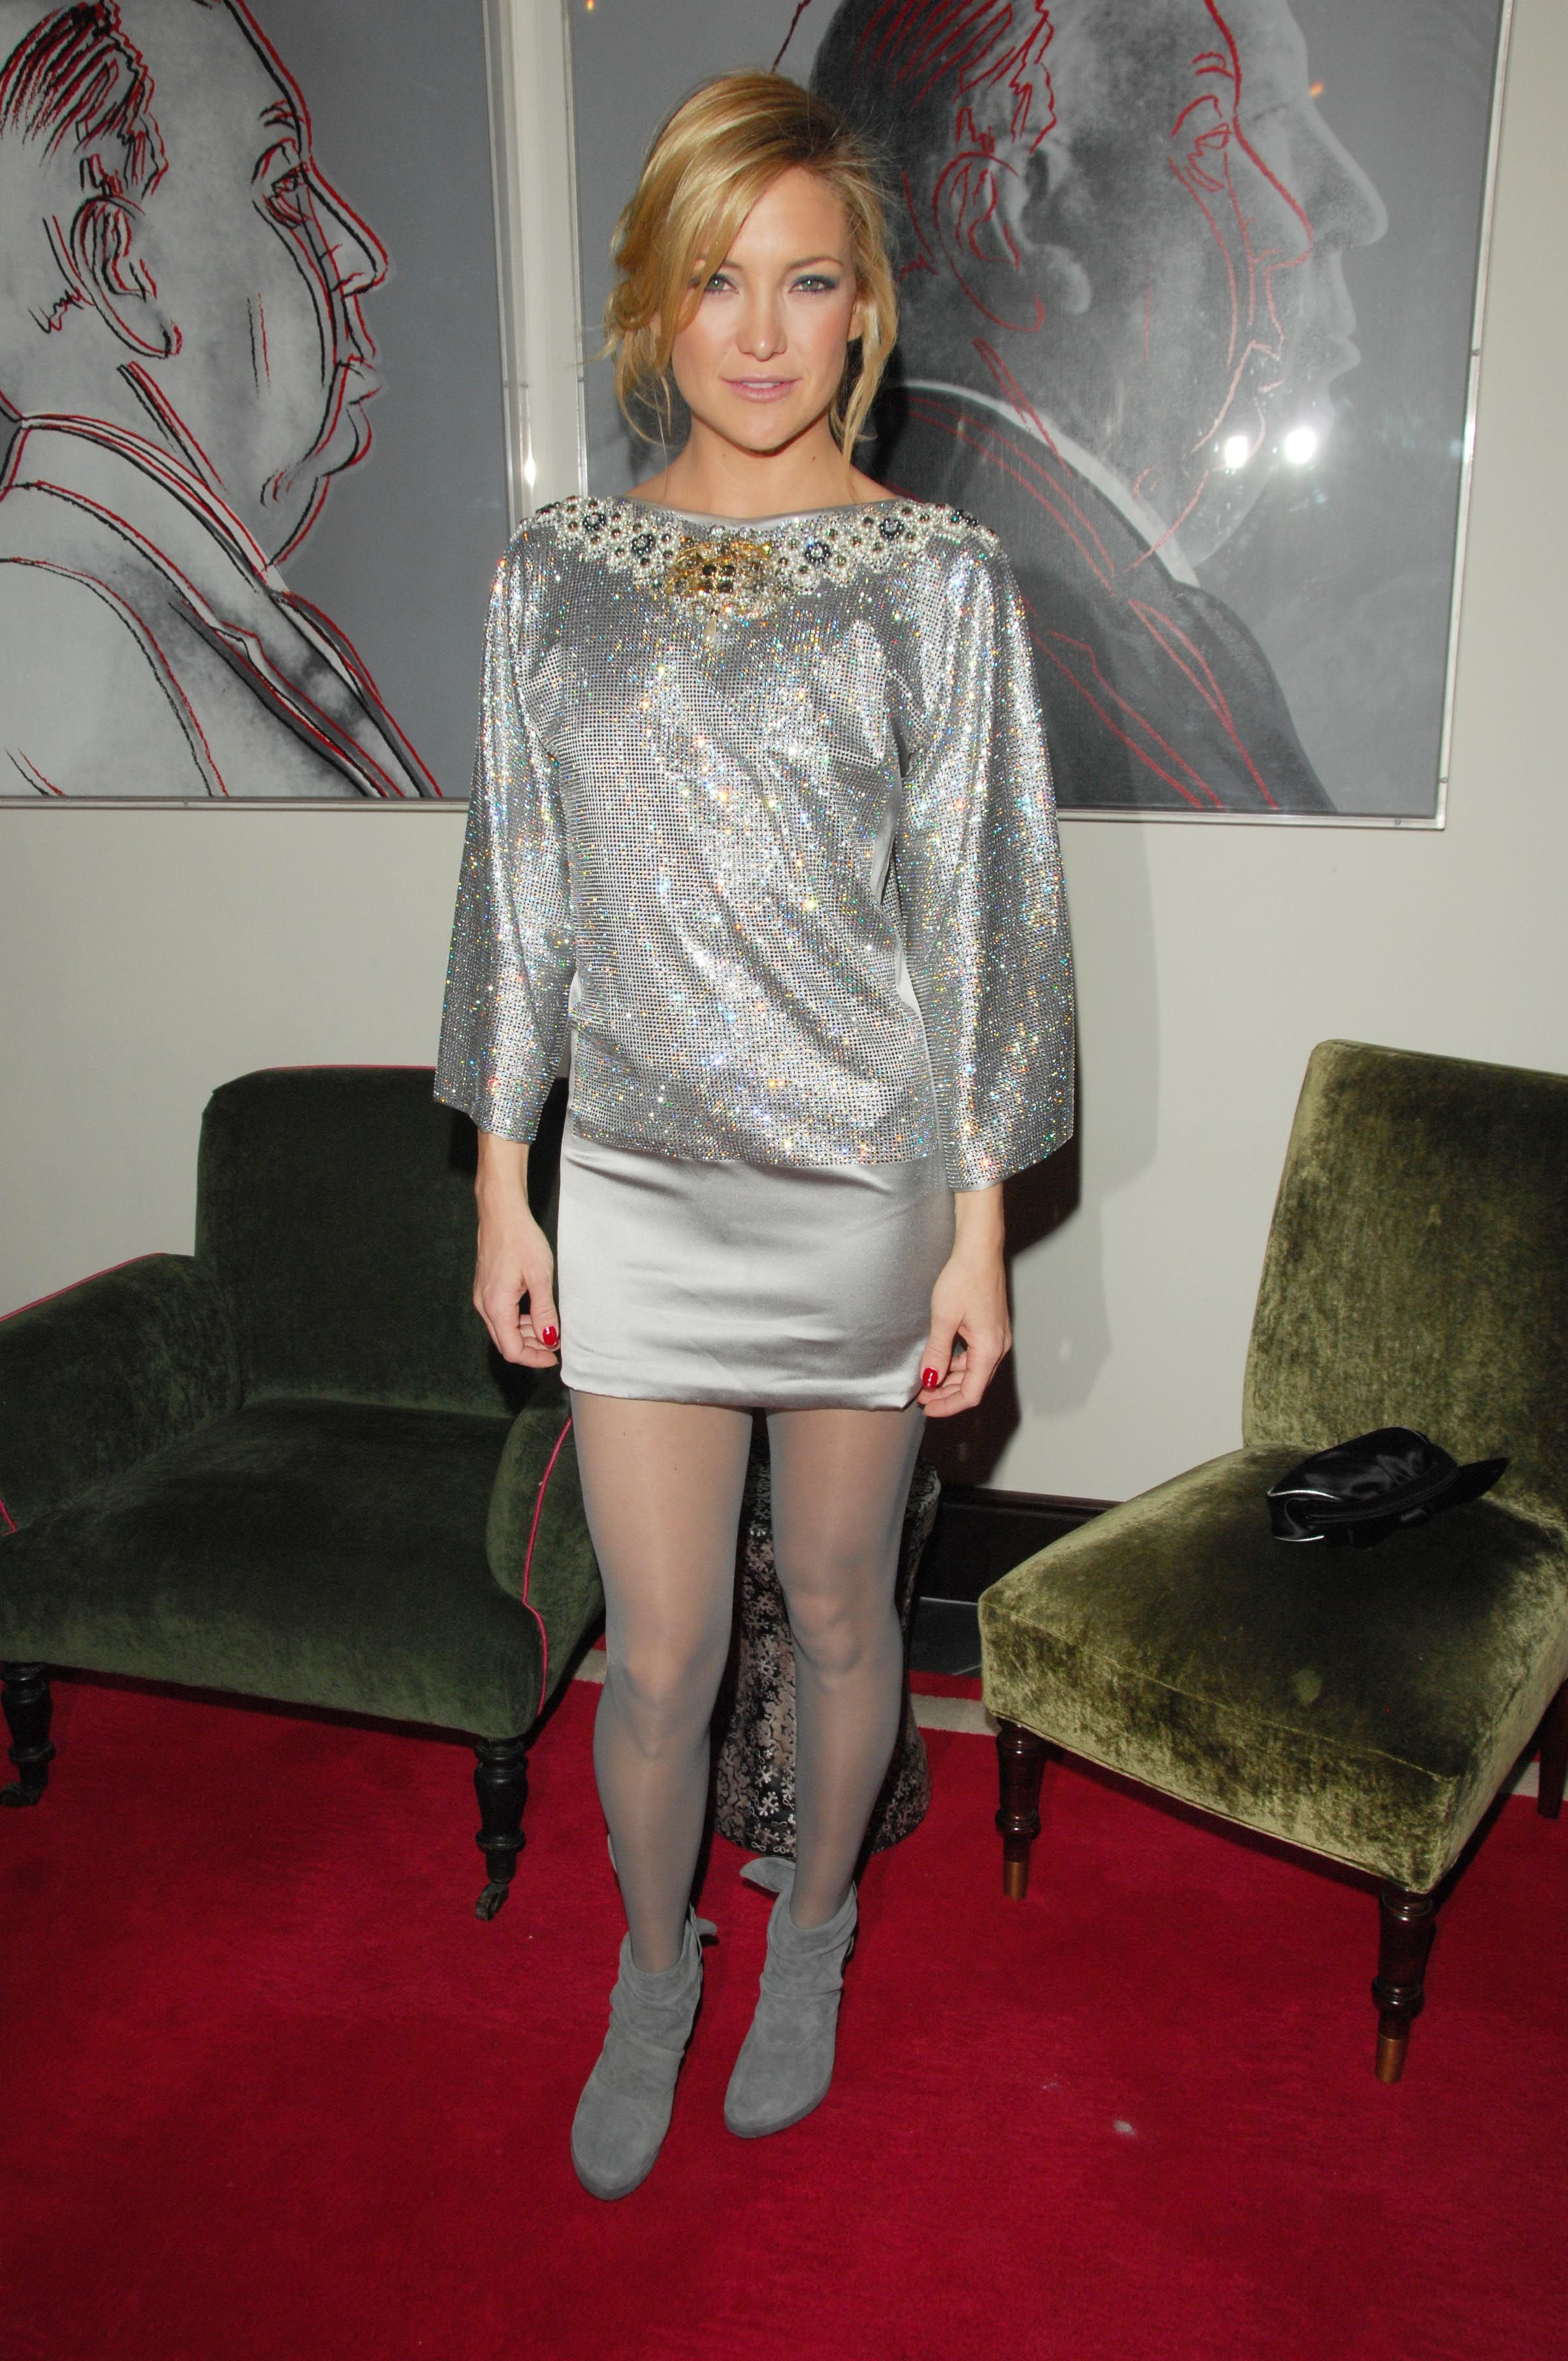 Sparkly! | Tights and Pantyhose that Rock!